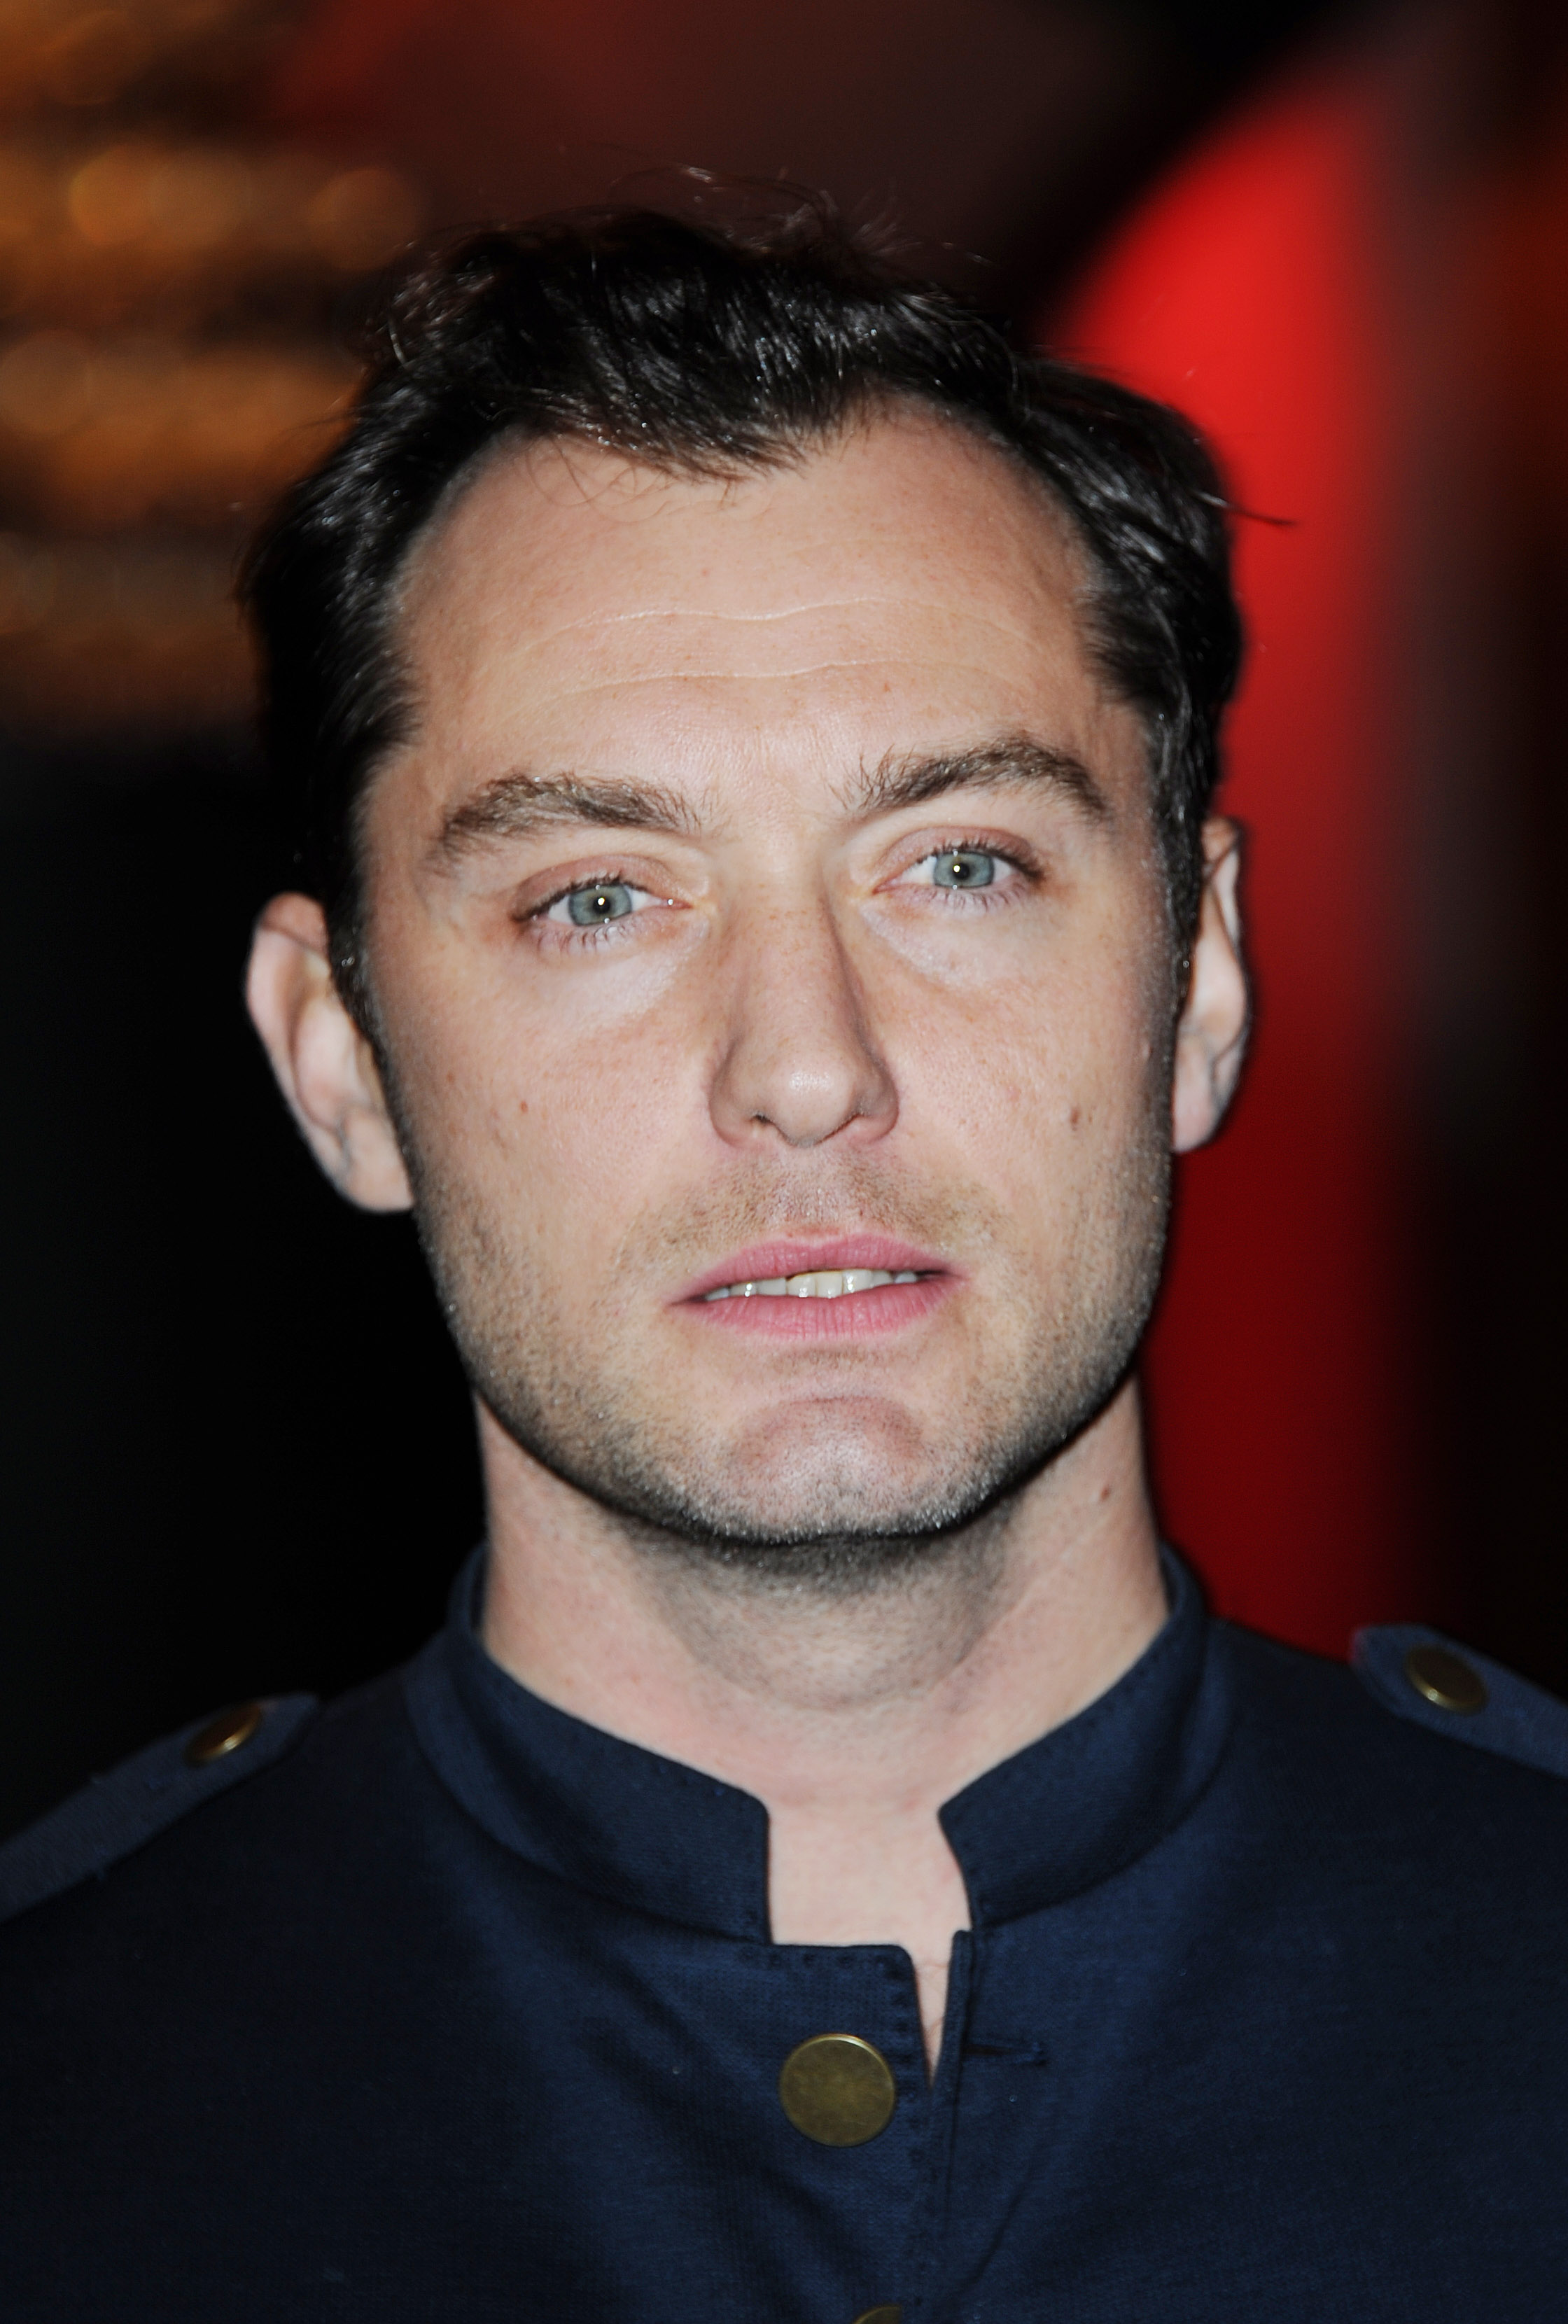 Jude Law won the Variety Award at the BIFAs.